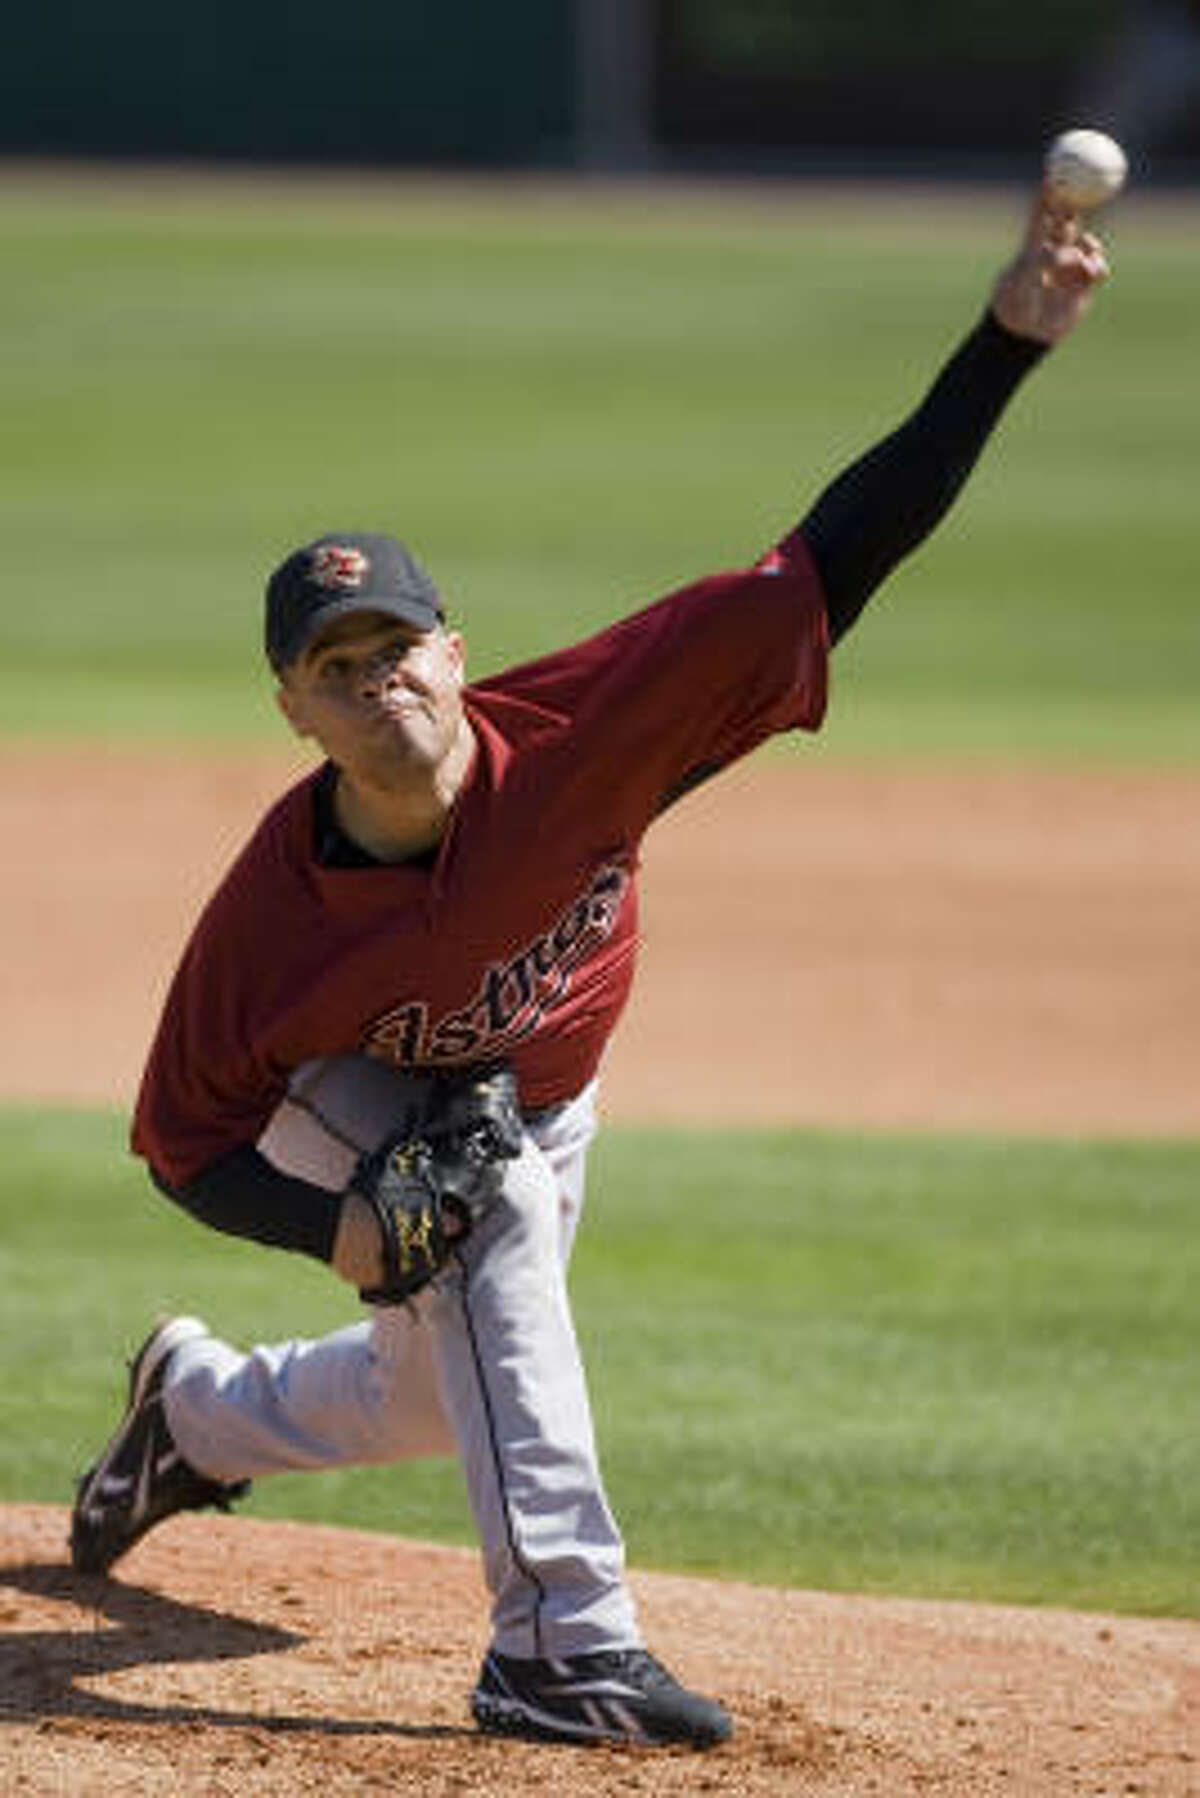 Wandy Rodriguez, who injured his ribcage in his start against Washington, will miss his next scheduled start.